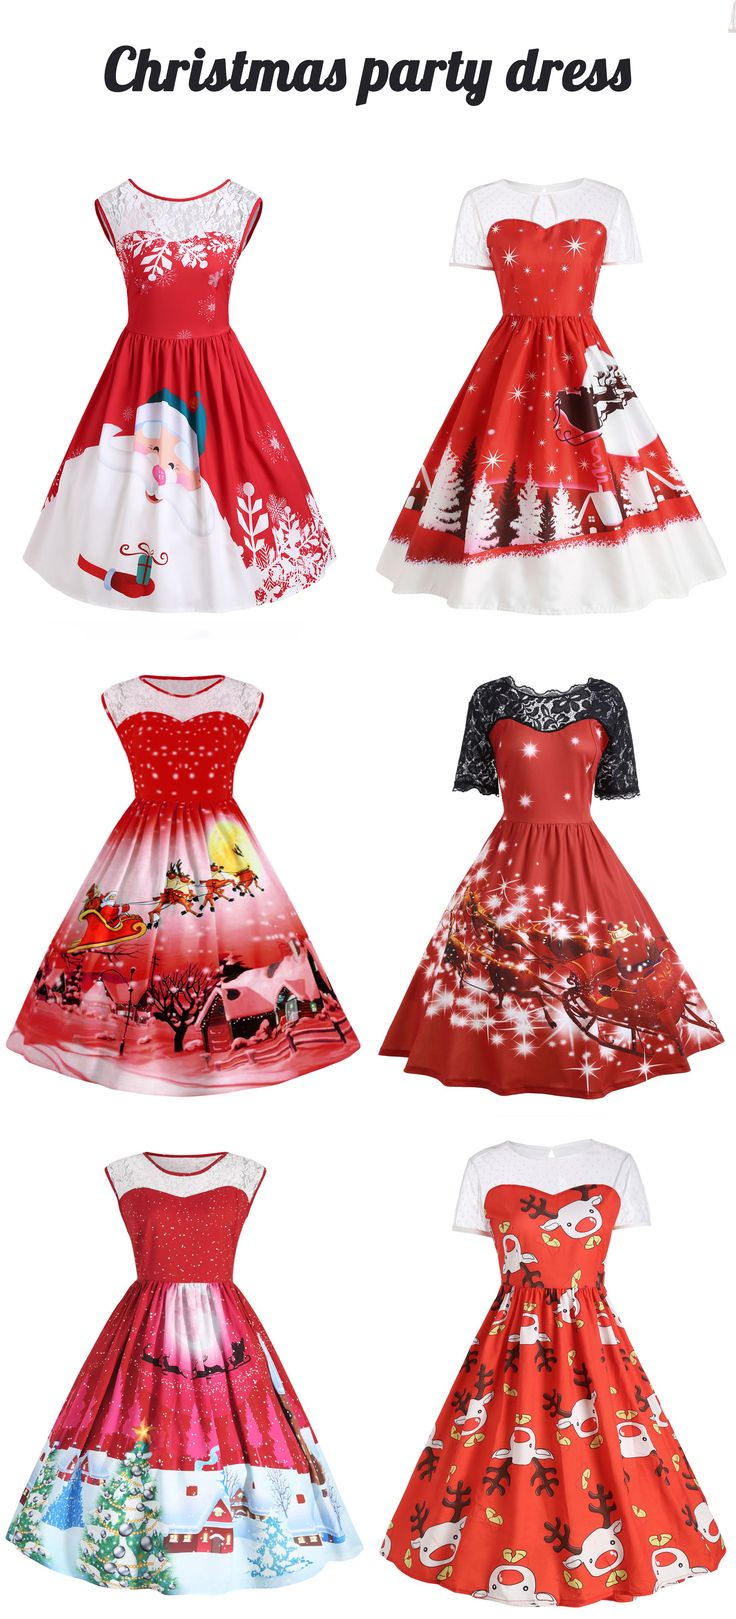 Up to 80% off, Rosewholesale christmas party dress for women | Rosewholesale, Rosewholesale plus size, Rosewholesale dress, dress, christmas red, christmas party dress, plus size | #Rosewholesale #dress #plussize #christmas